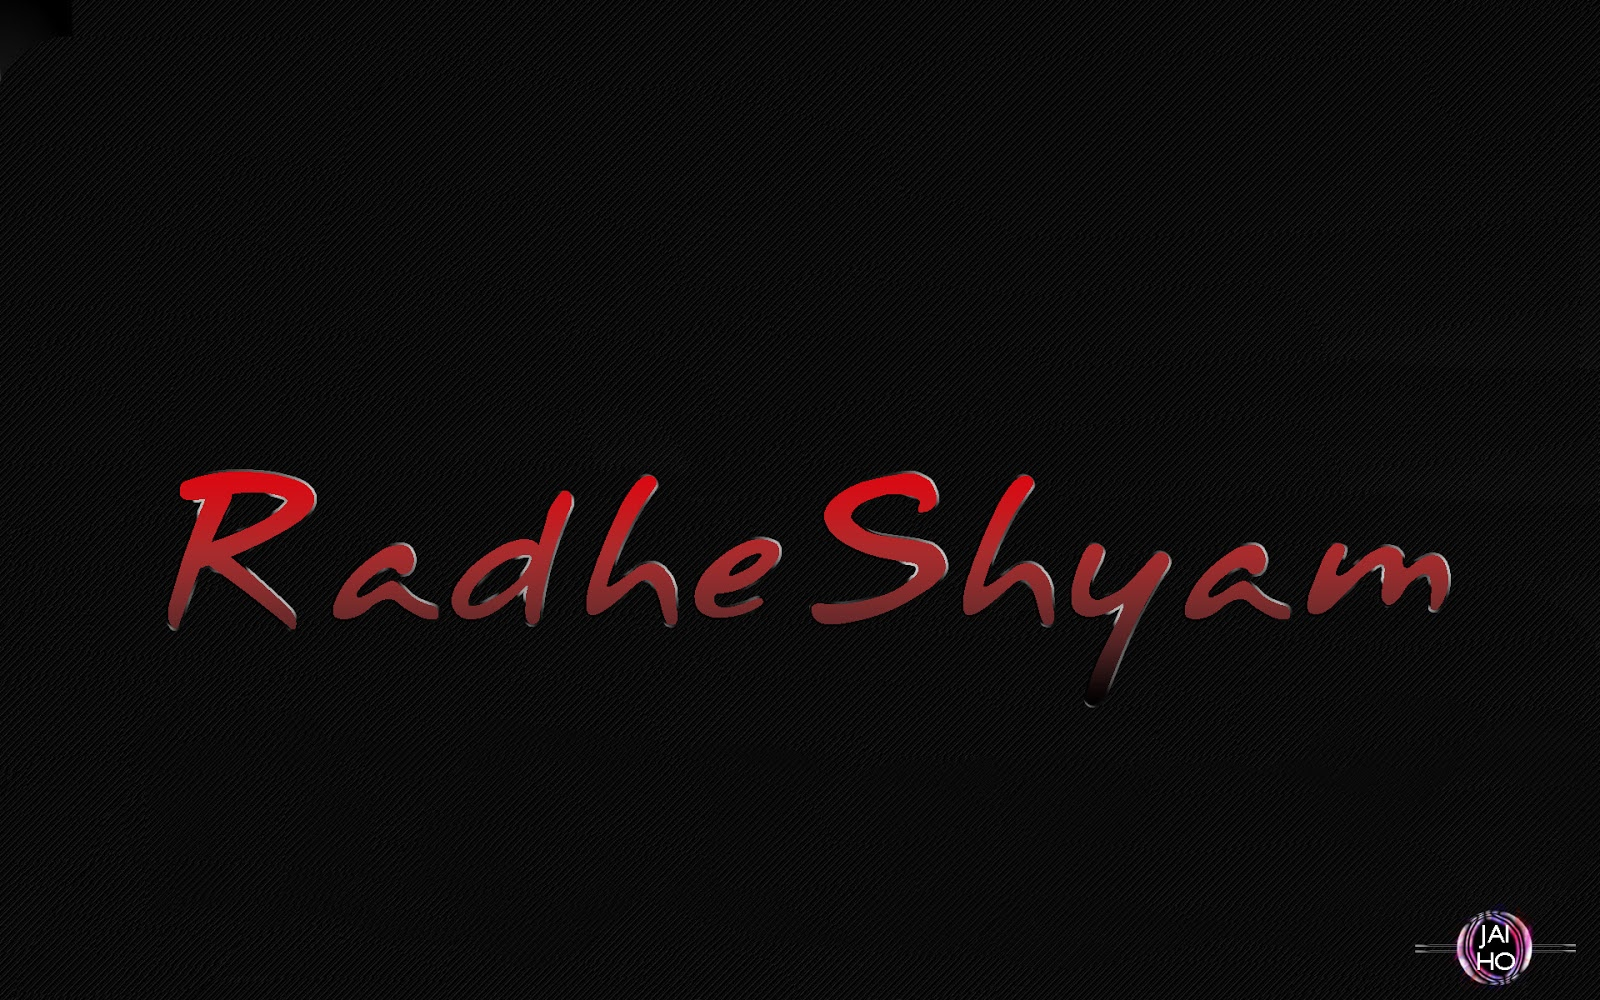 Hd Wallpaper Designer Radhe Shyam Hd Wallpaper In 2d 1920x1200 Free